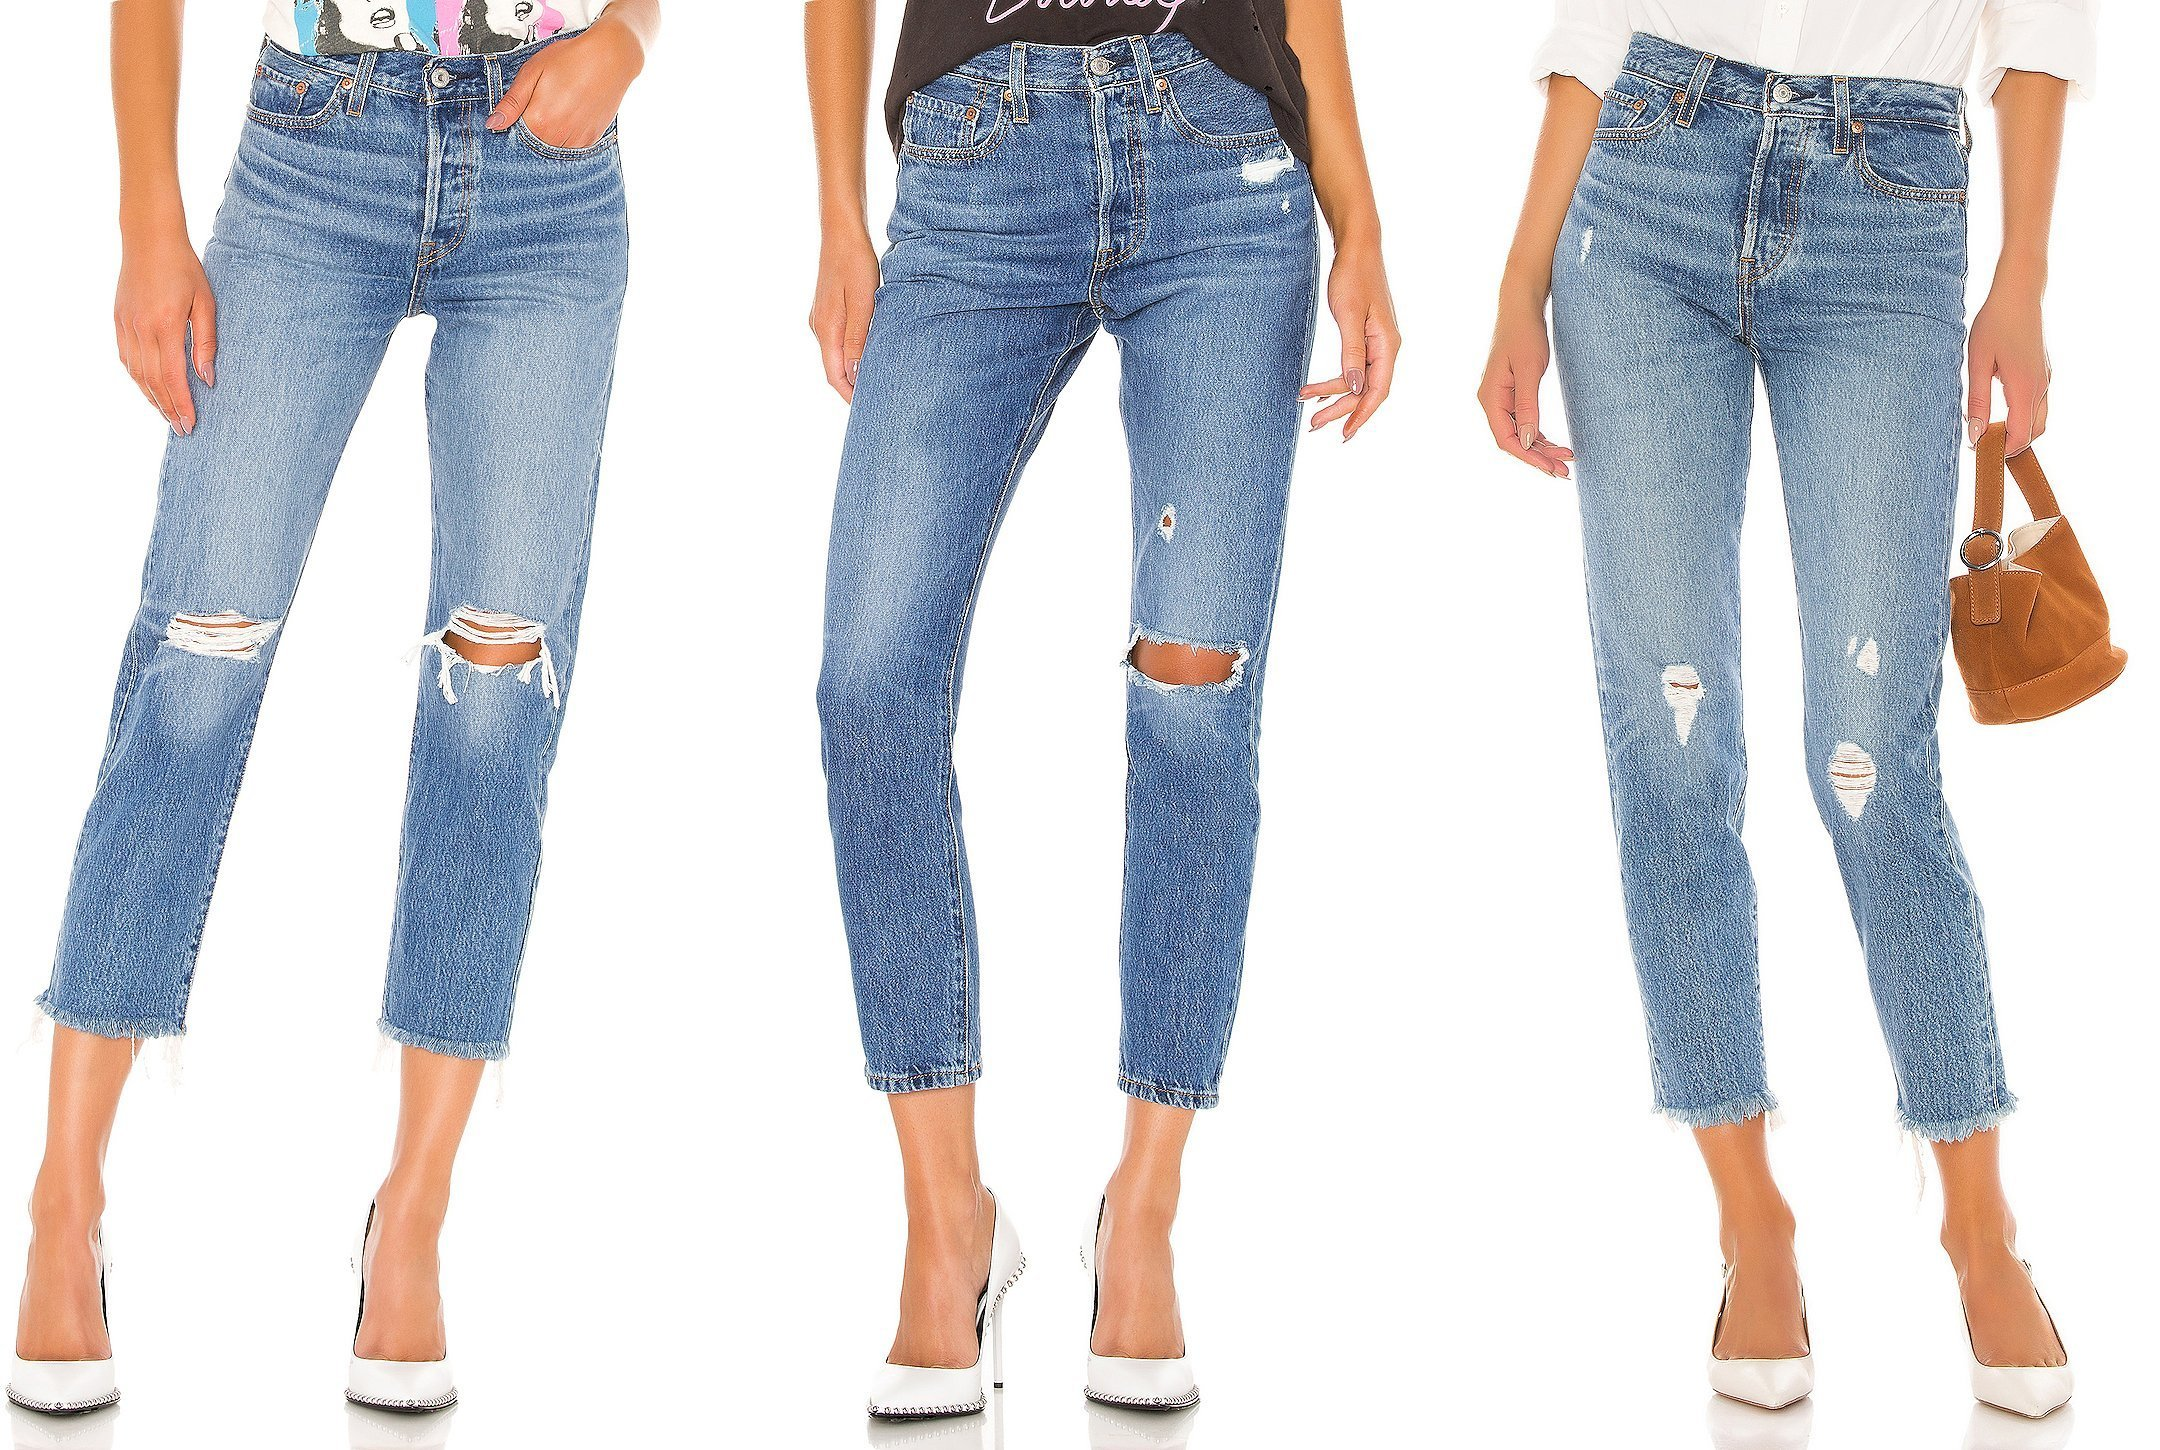 Your guide to shopping Levi's Jeans